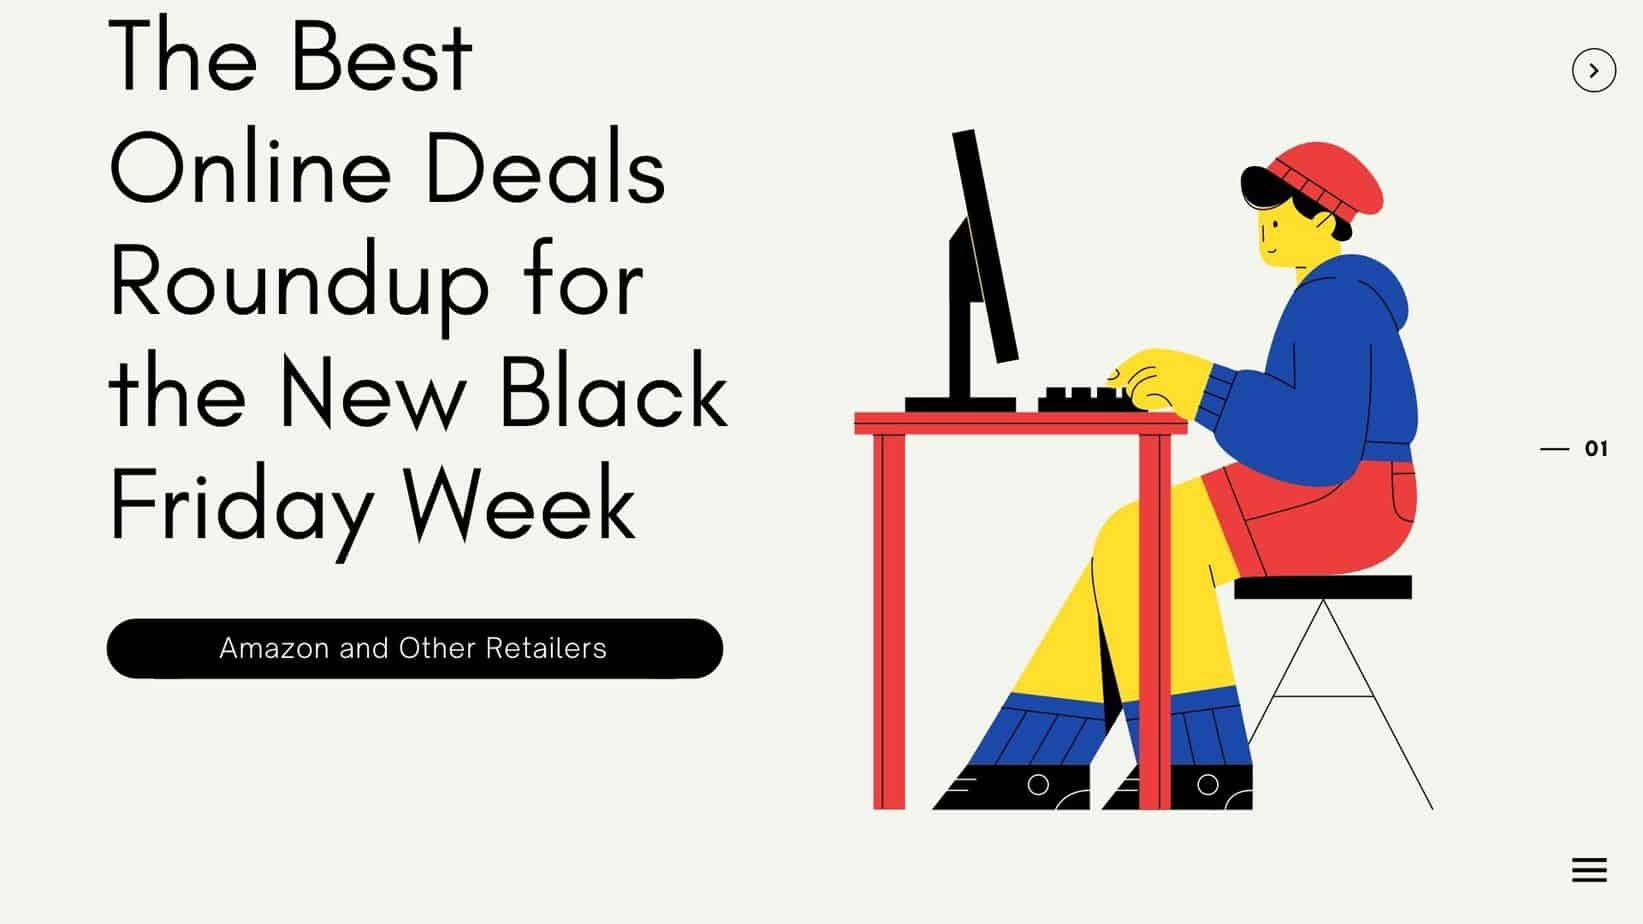 the best online deals roundup